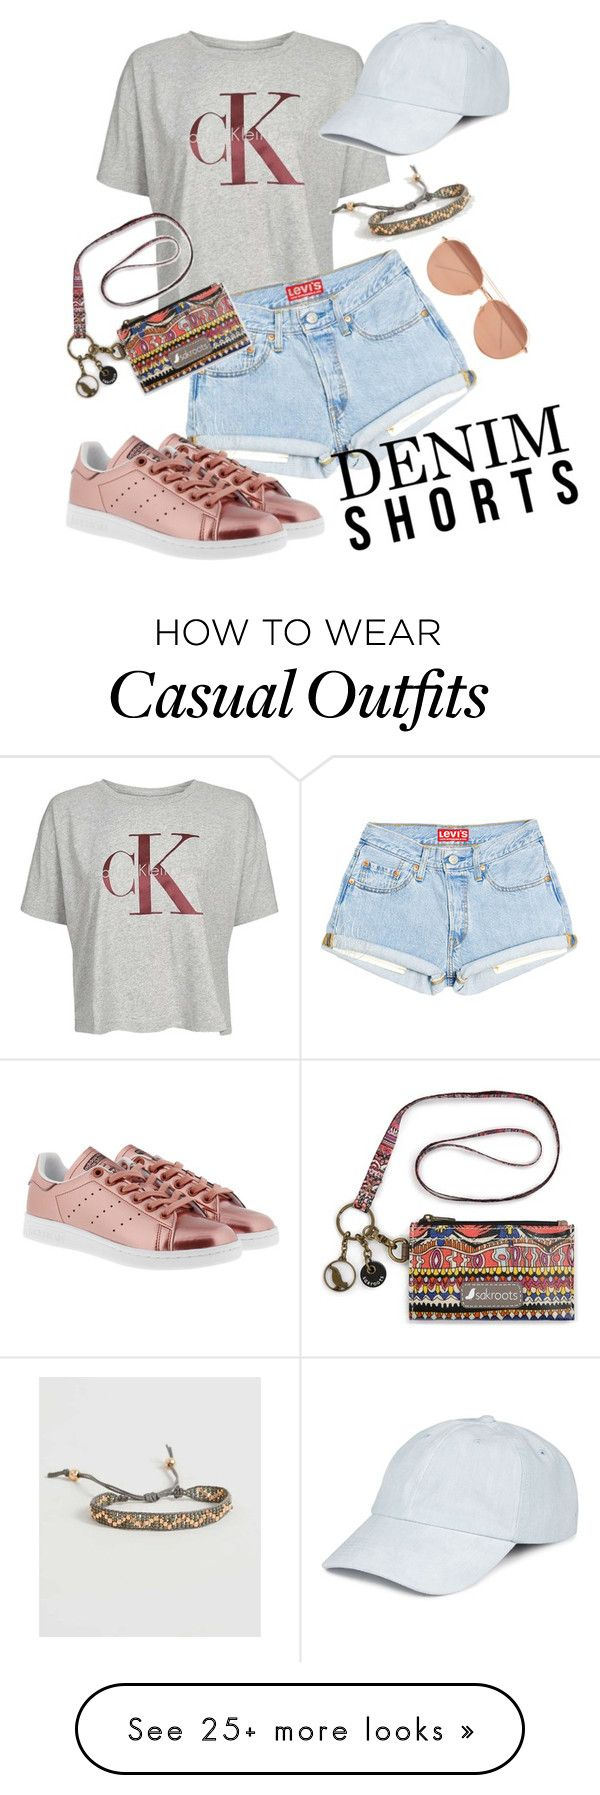 """""""Casual summer day"""" by hkcrist on Polyvore featuring Calvin Klein, adidas Originals, BKE, Celebrate Shop and Linda Farrow"""